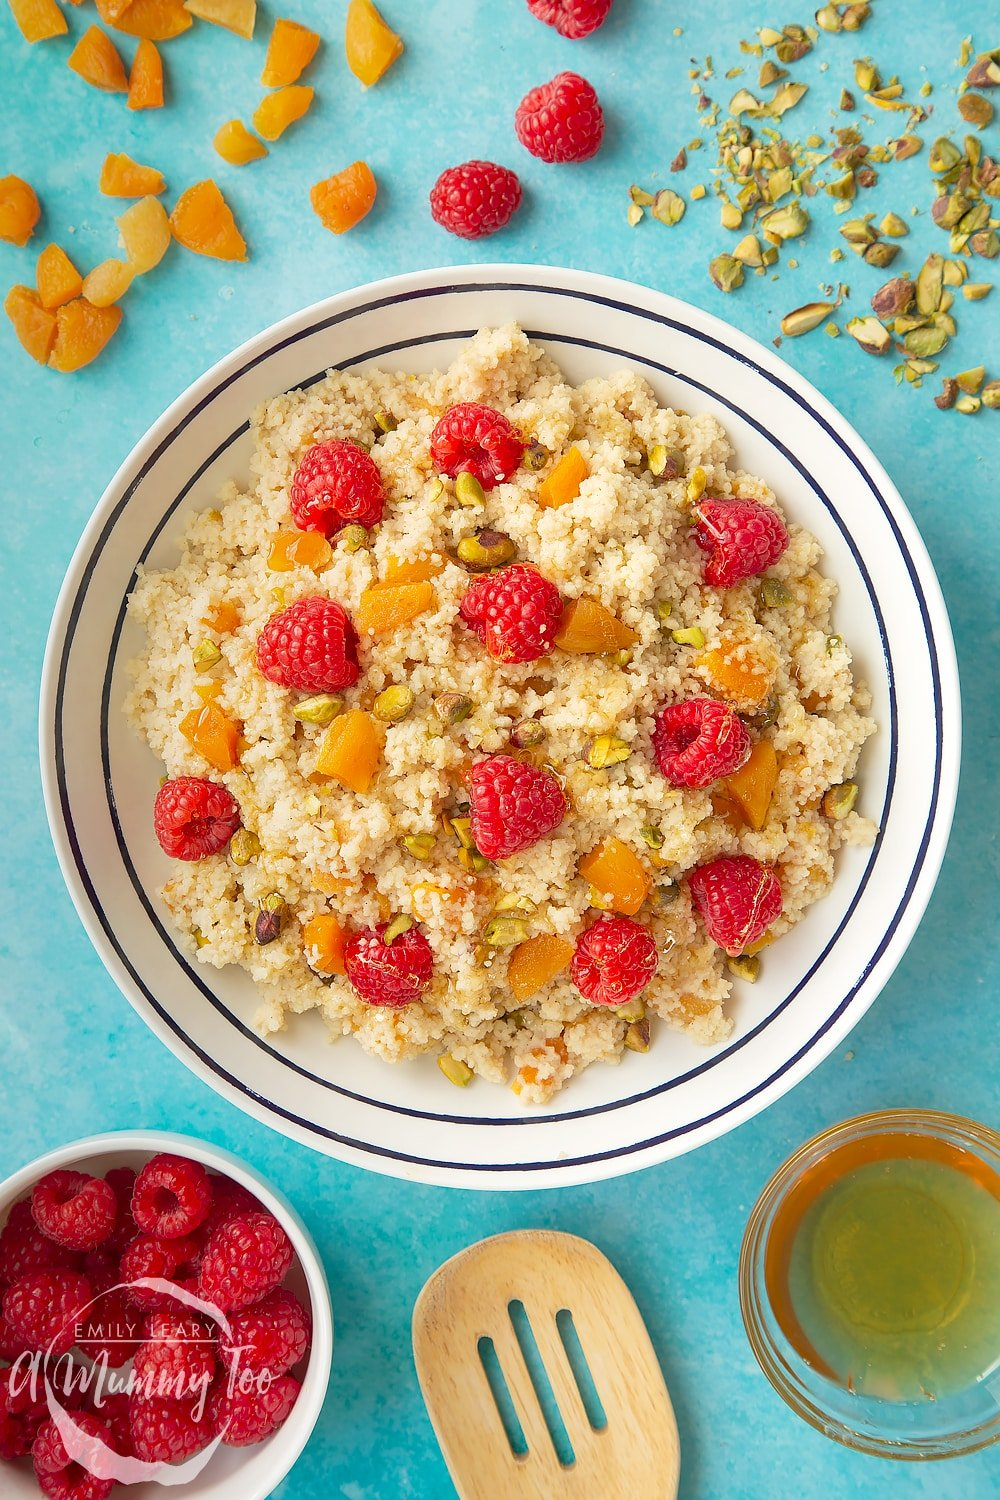 Overhead shot of the sweet breakfast couscous in a white bowl with black decoation. At the side of the bowl there's some of the ingredients required for the recipe.